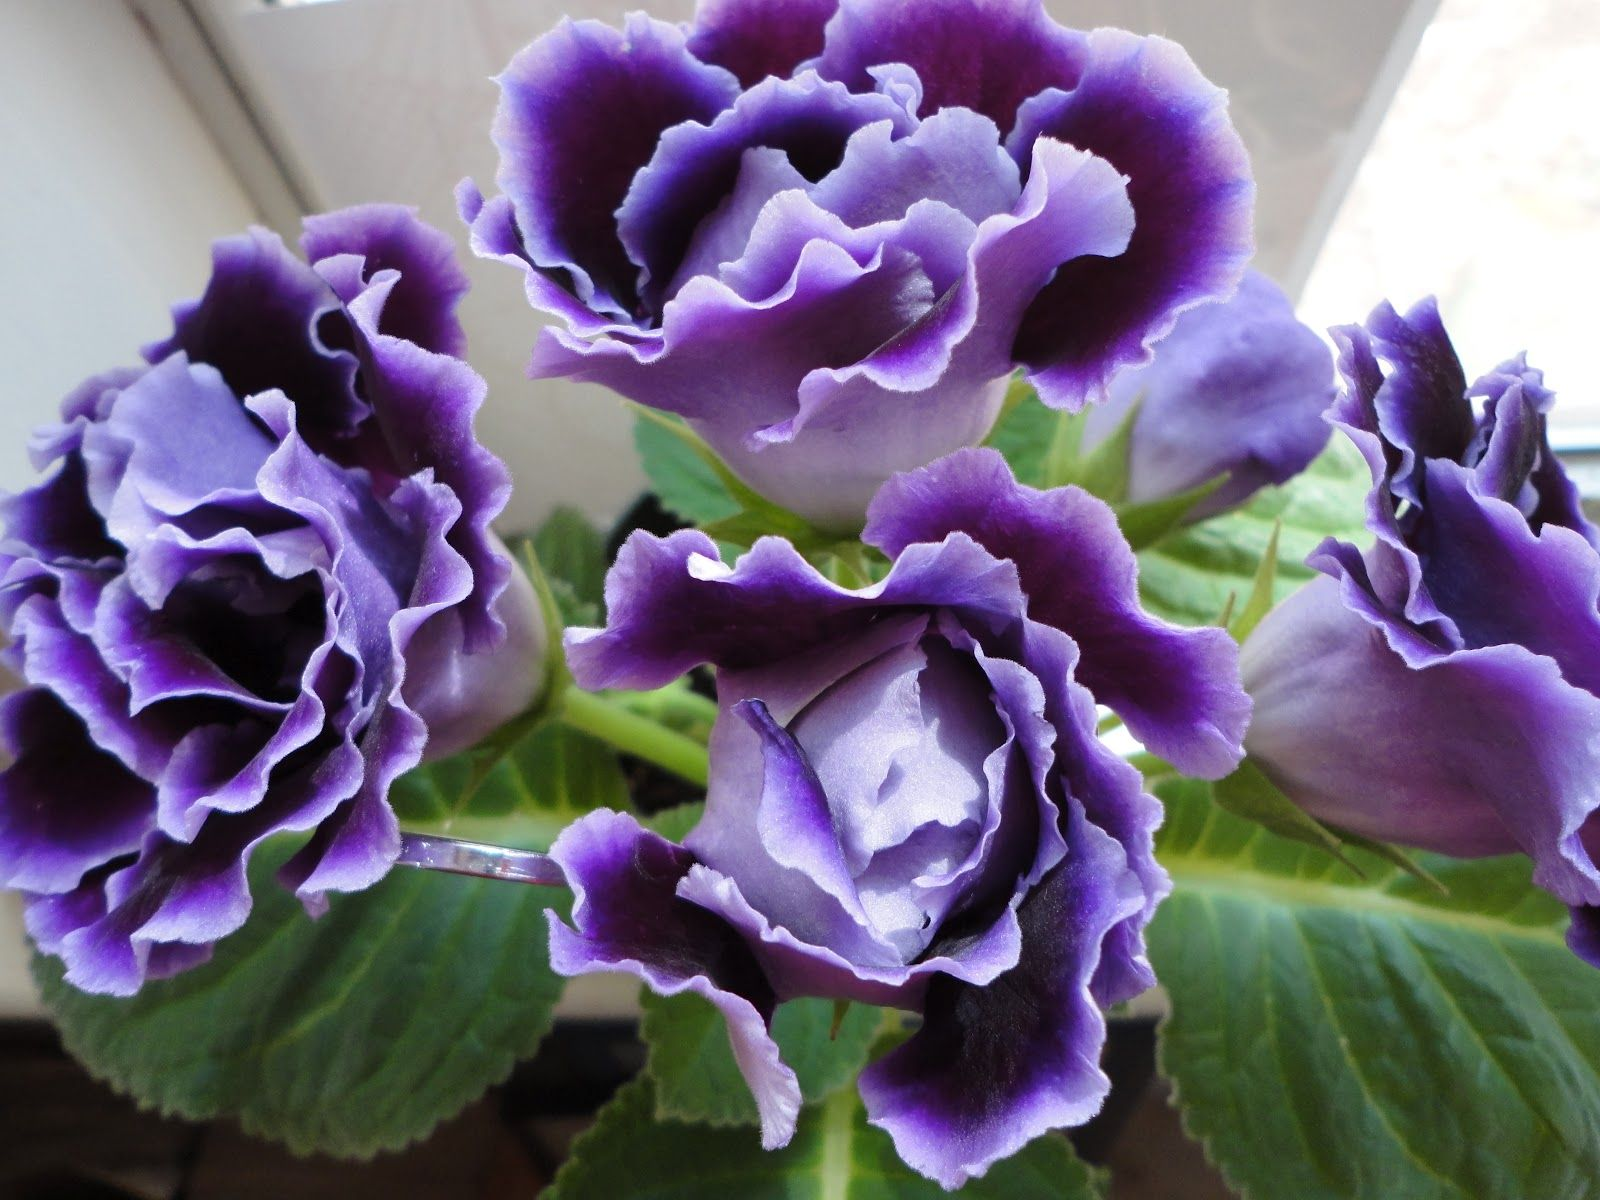 Gloxinia is related to African Violets